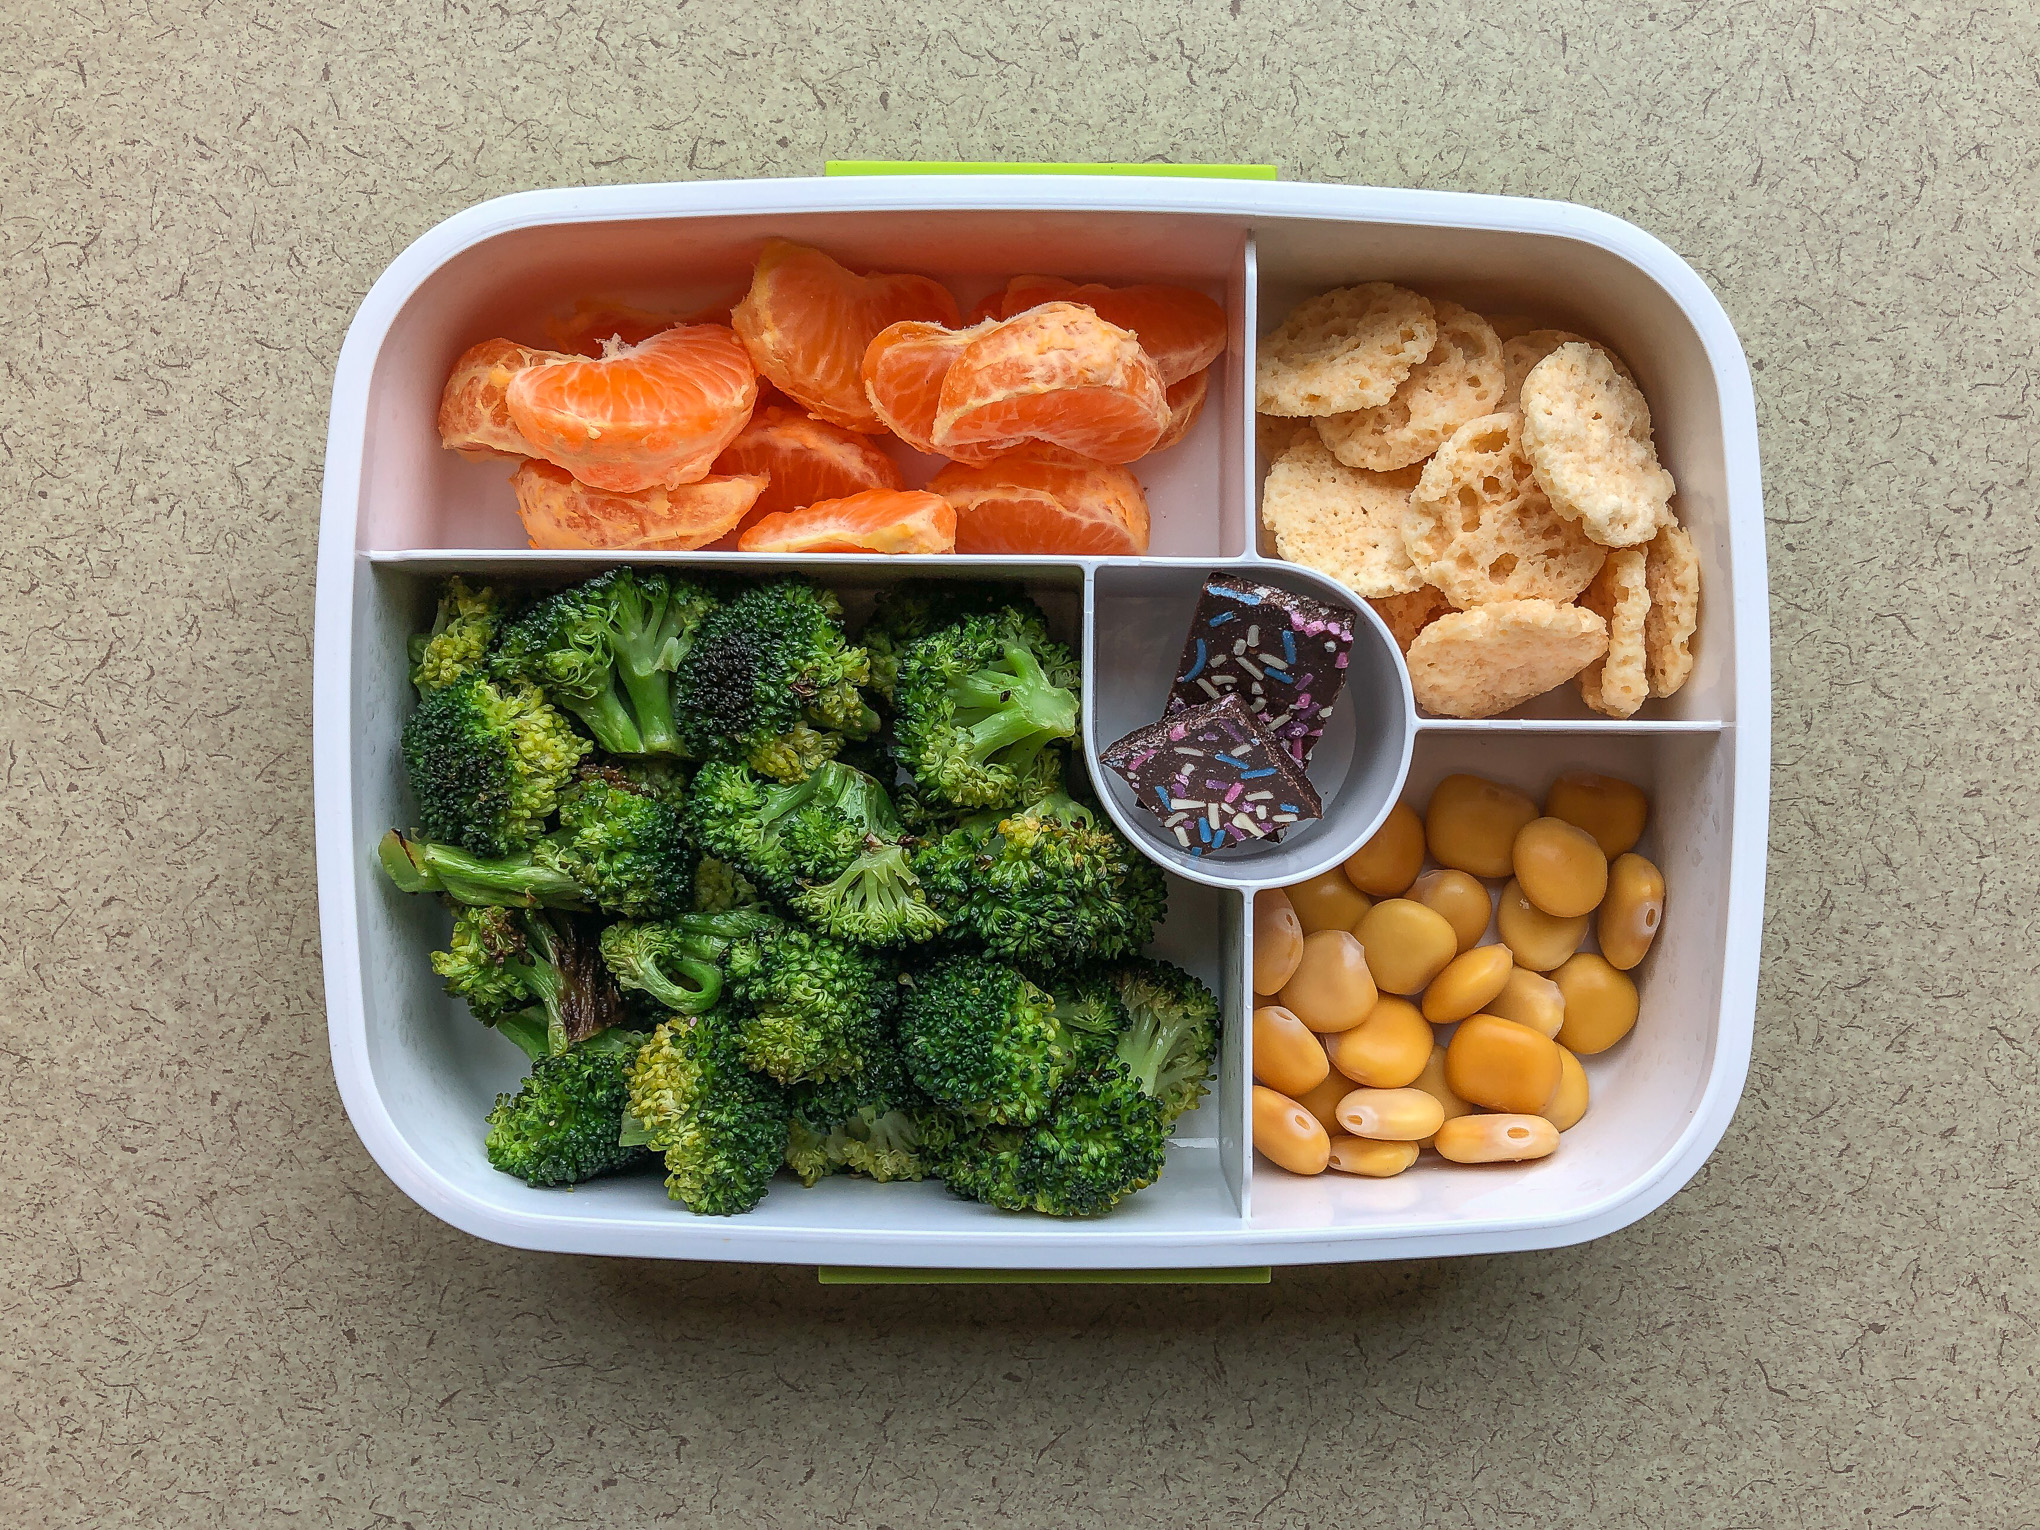 Bento box filled with oranges, broccoli and beans